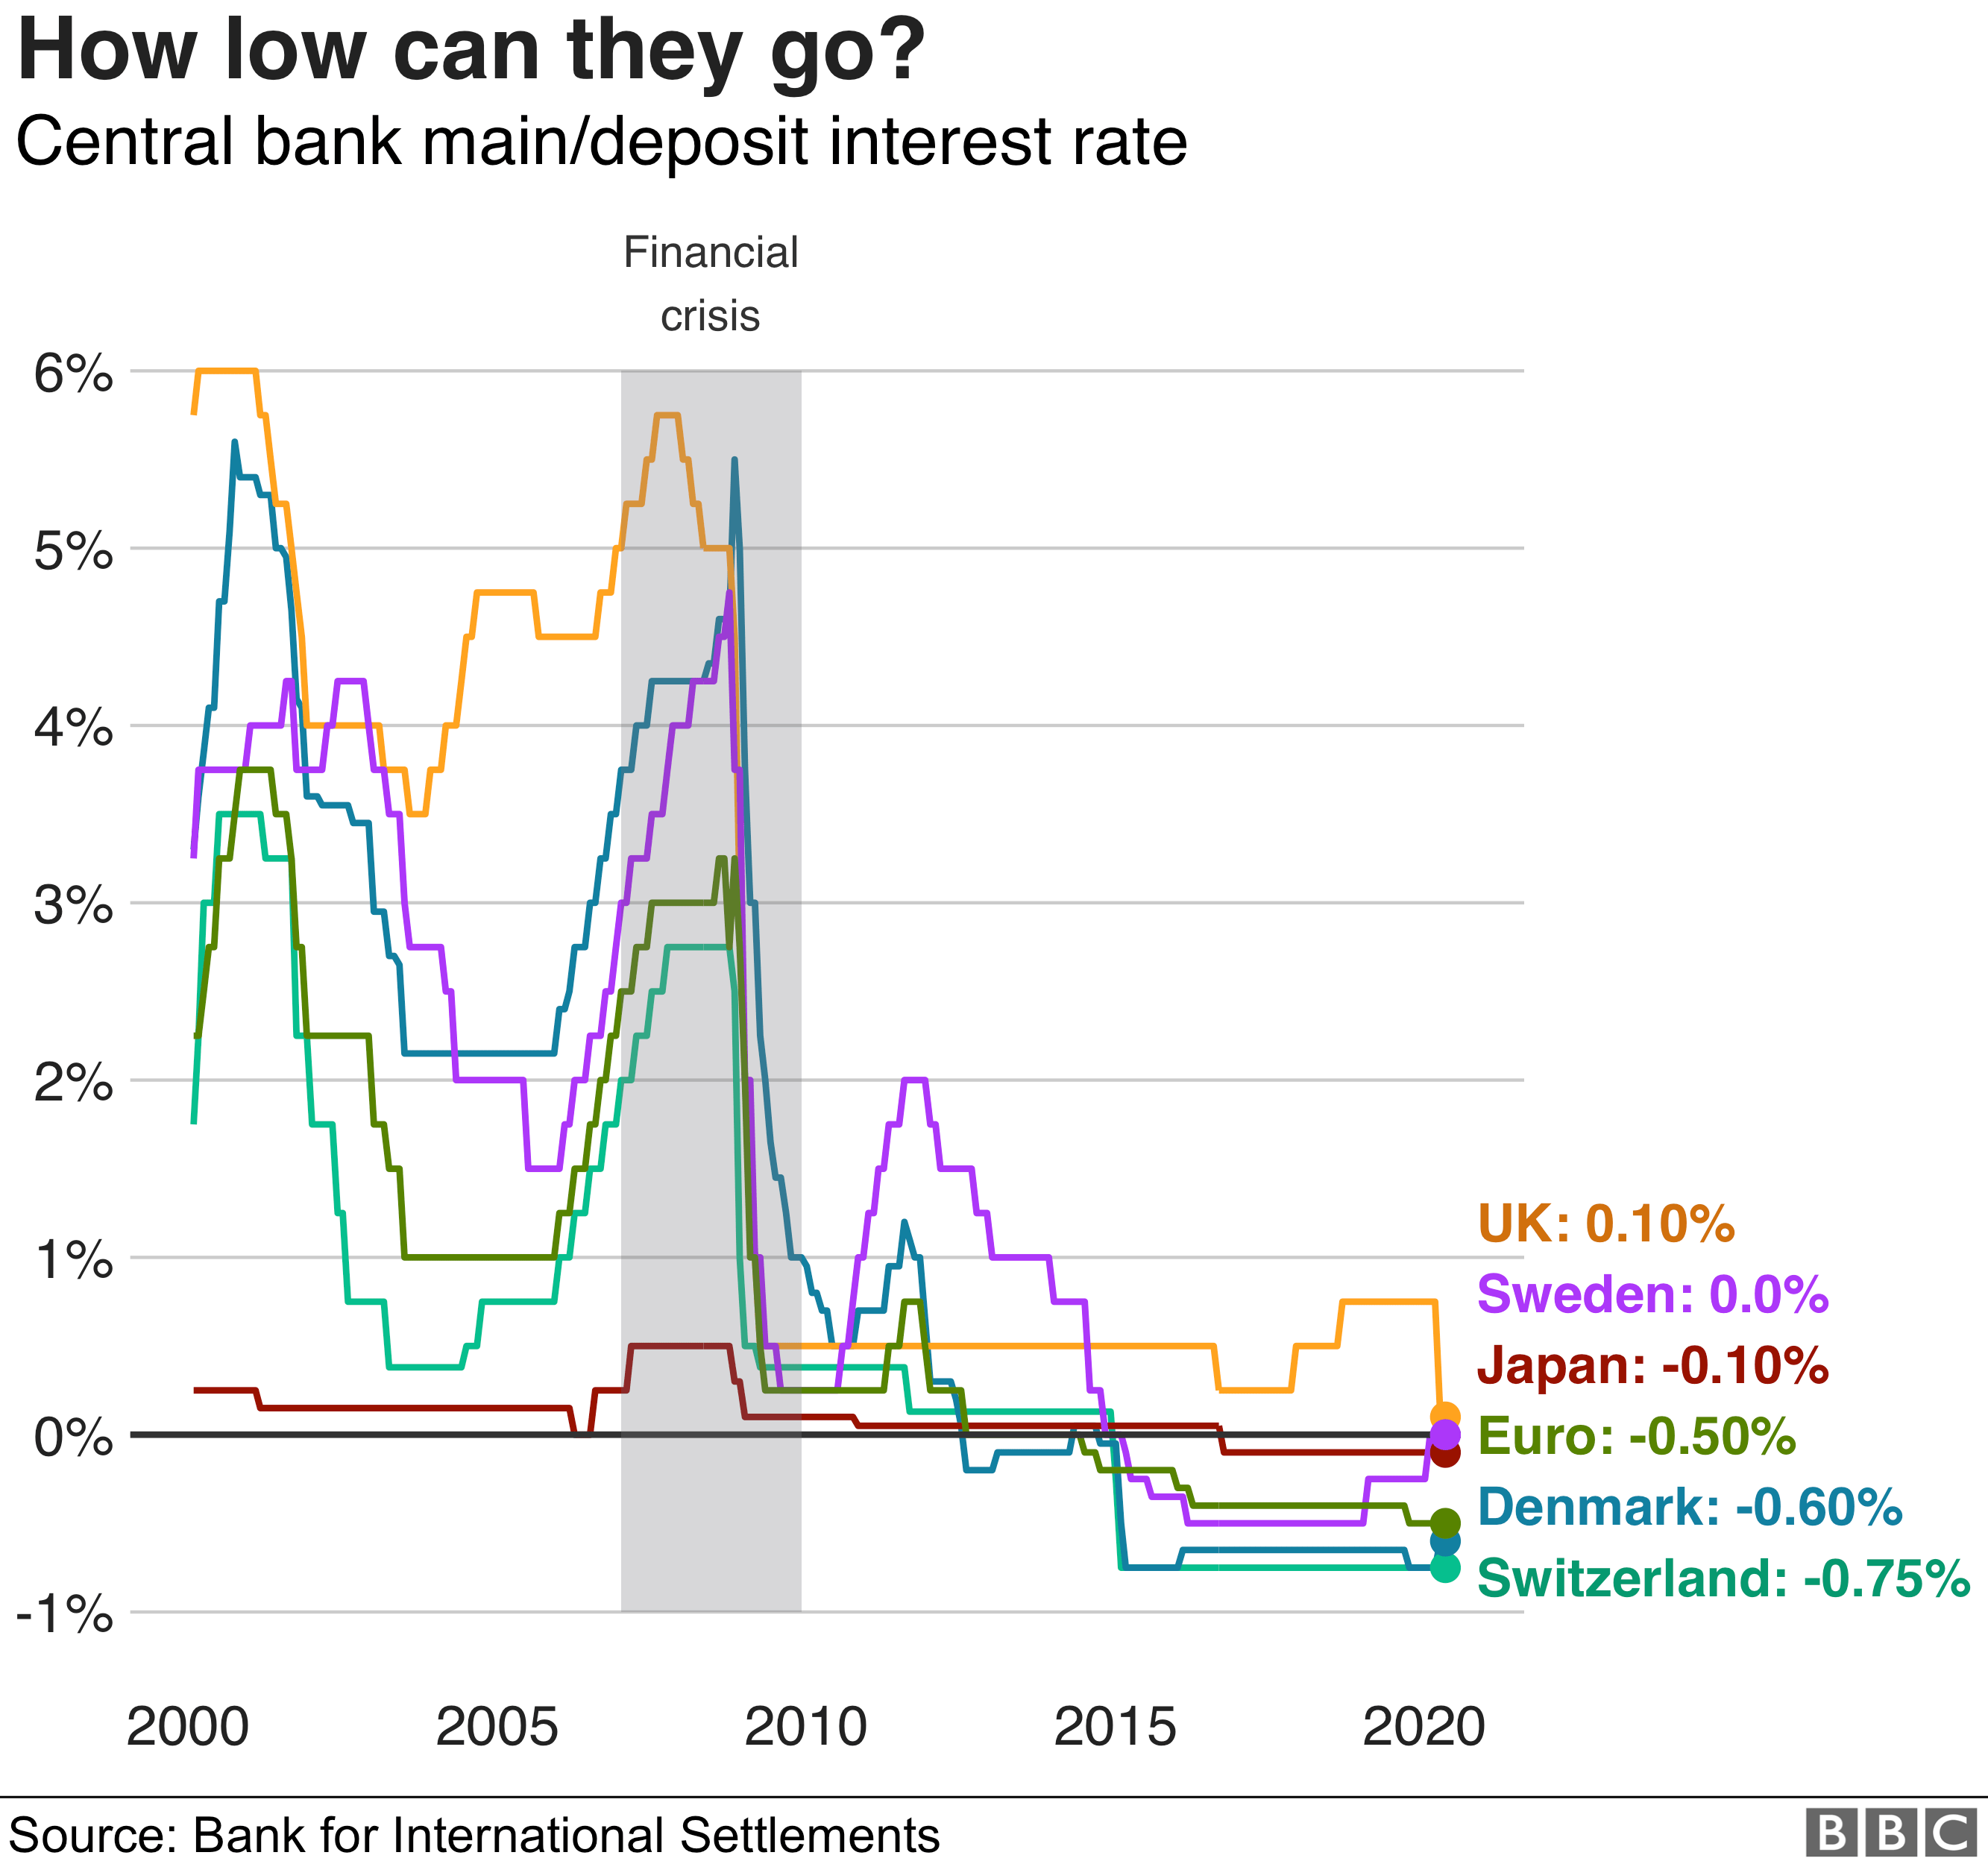 Interest rates have fallen across the world